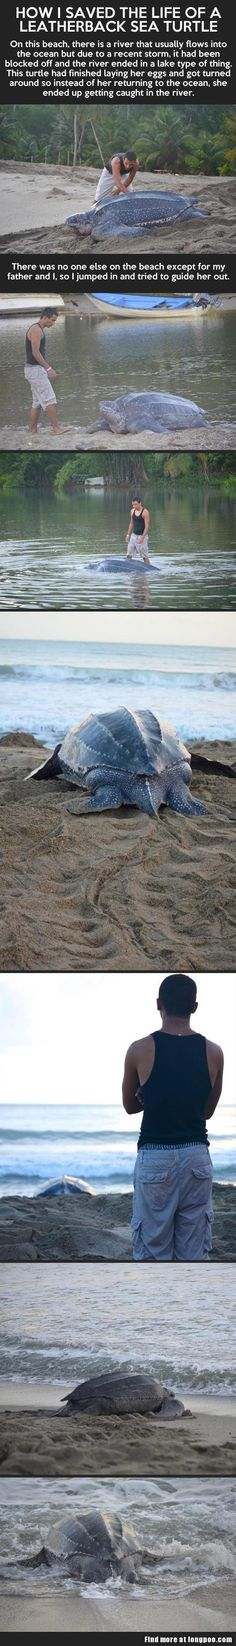 How I saved the life of a leatherback sea turtle…